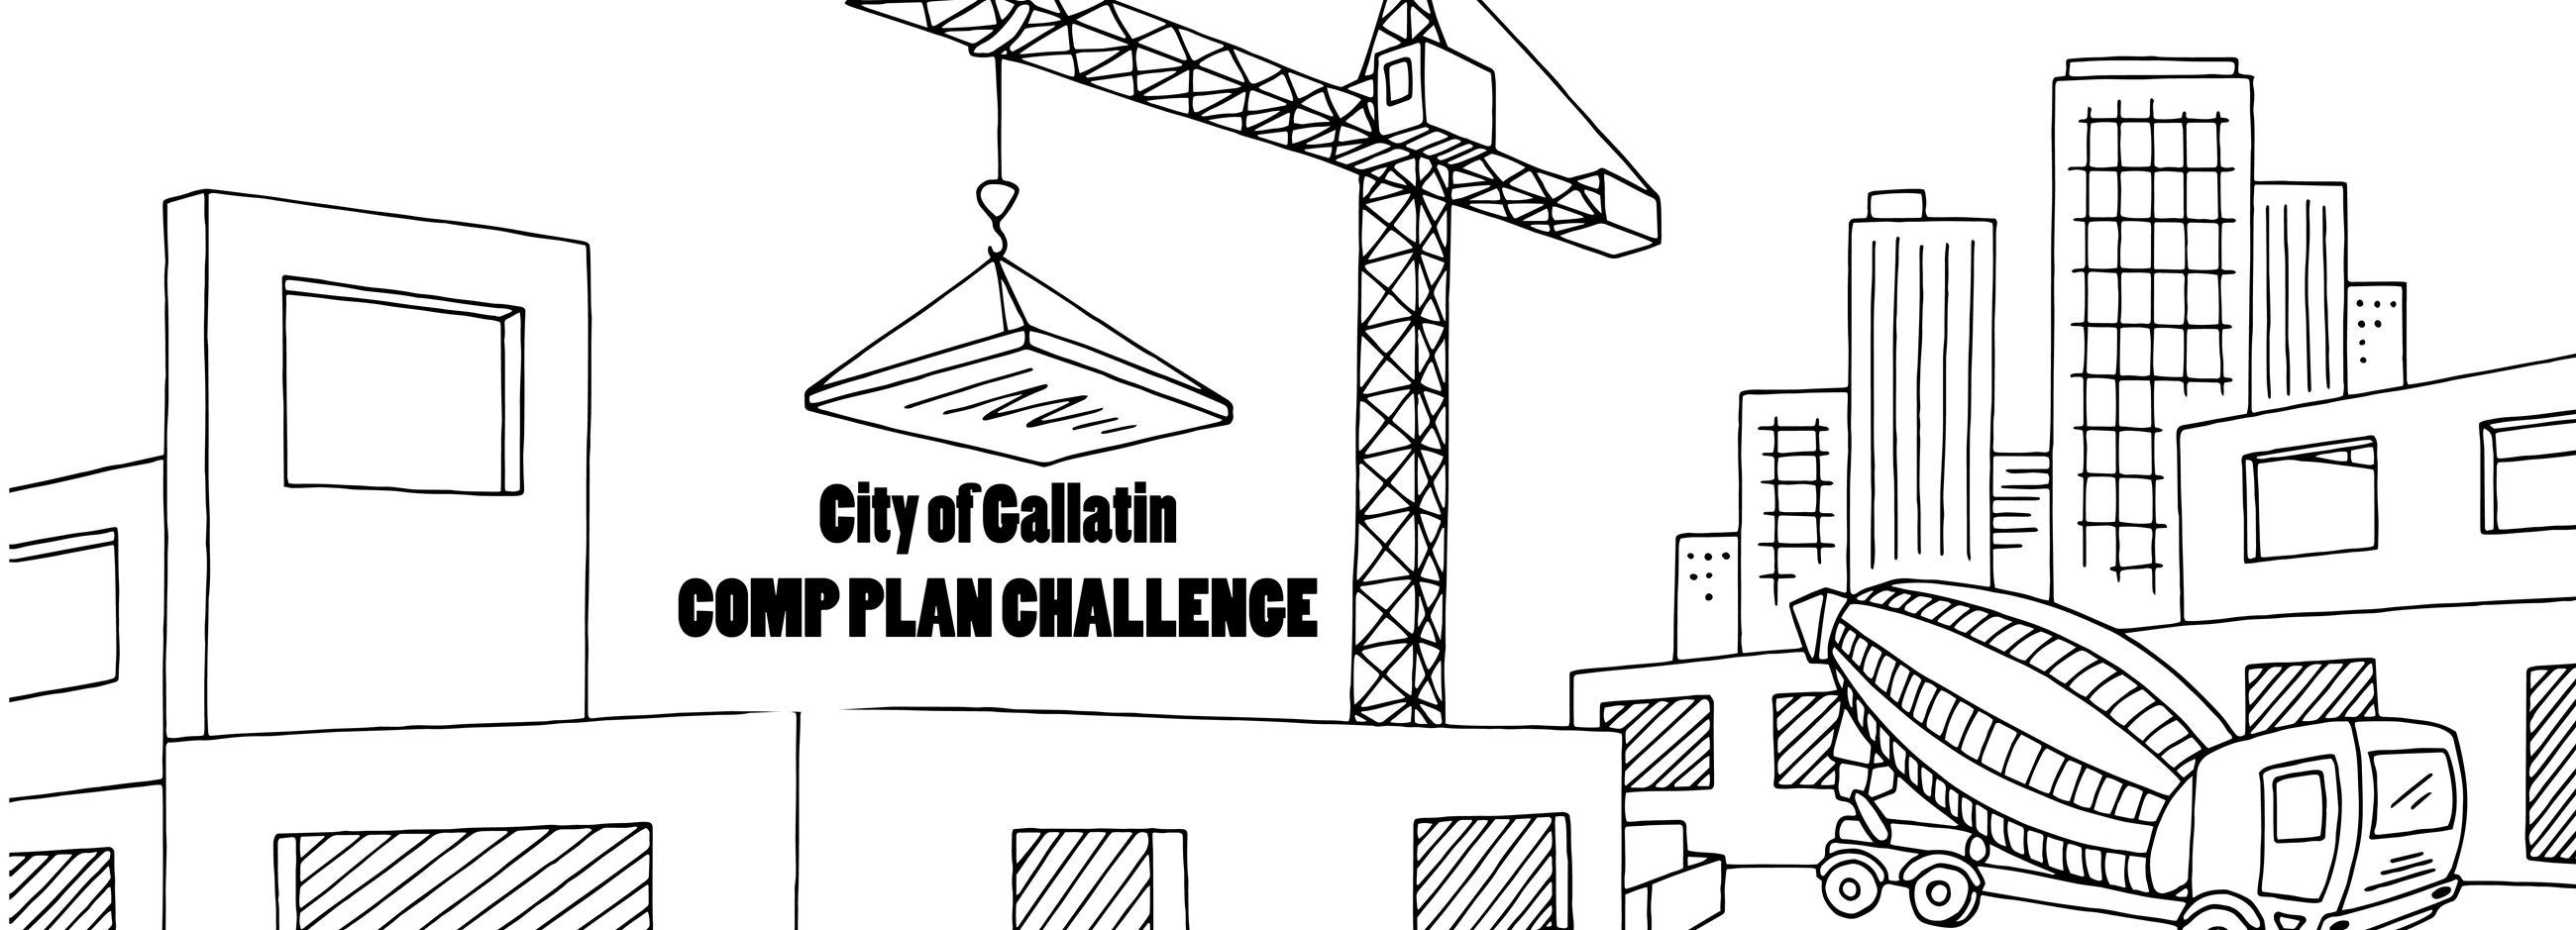 Outline drawing of future construction in Gallatin